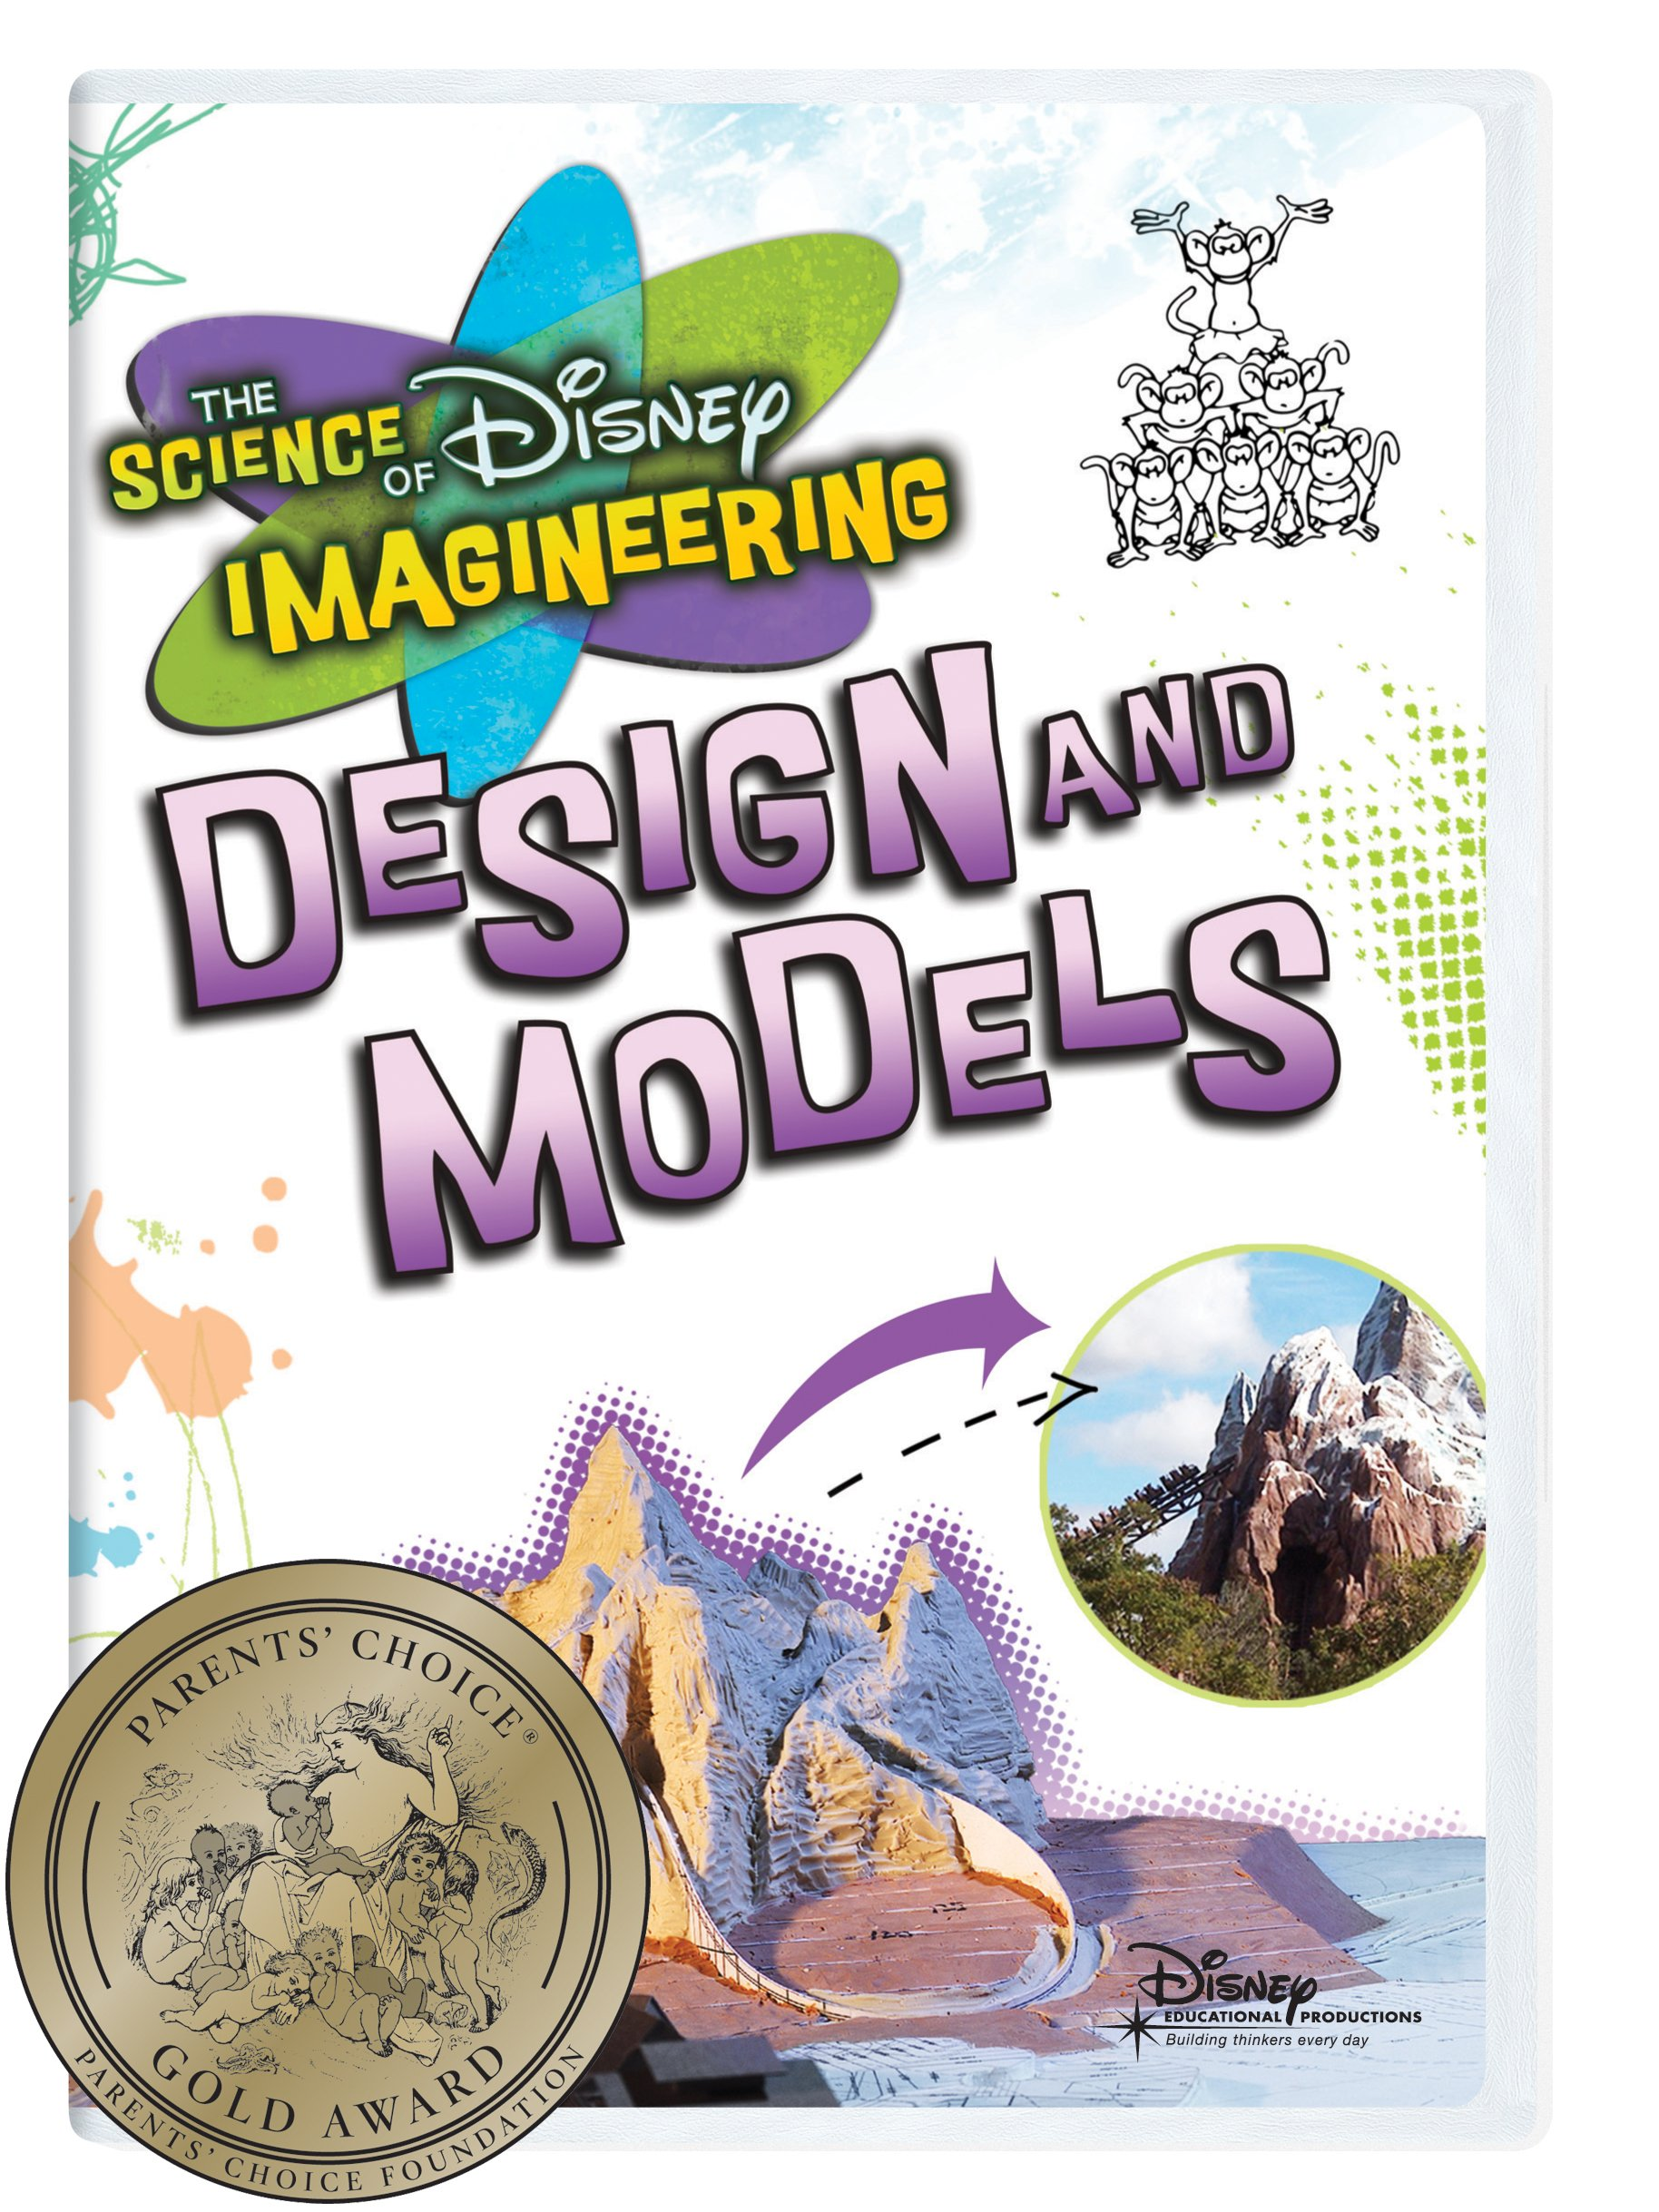 The Science of Disney Imagineering: Design and Models Classroom Edition [Interactive DVD] by Disney Educational Productions